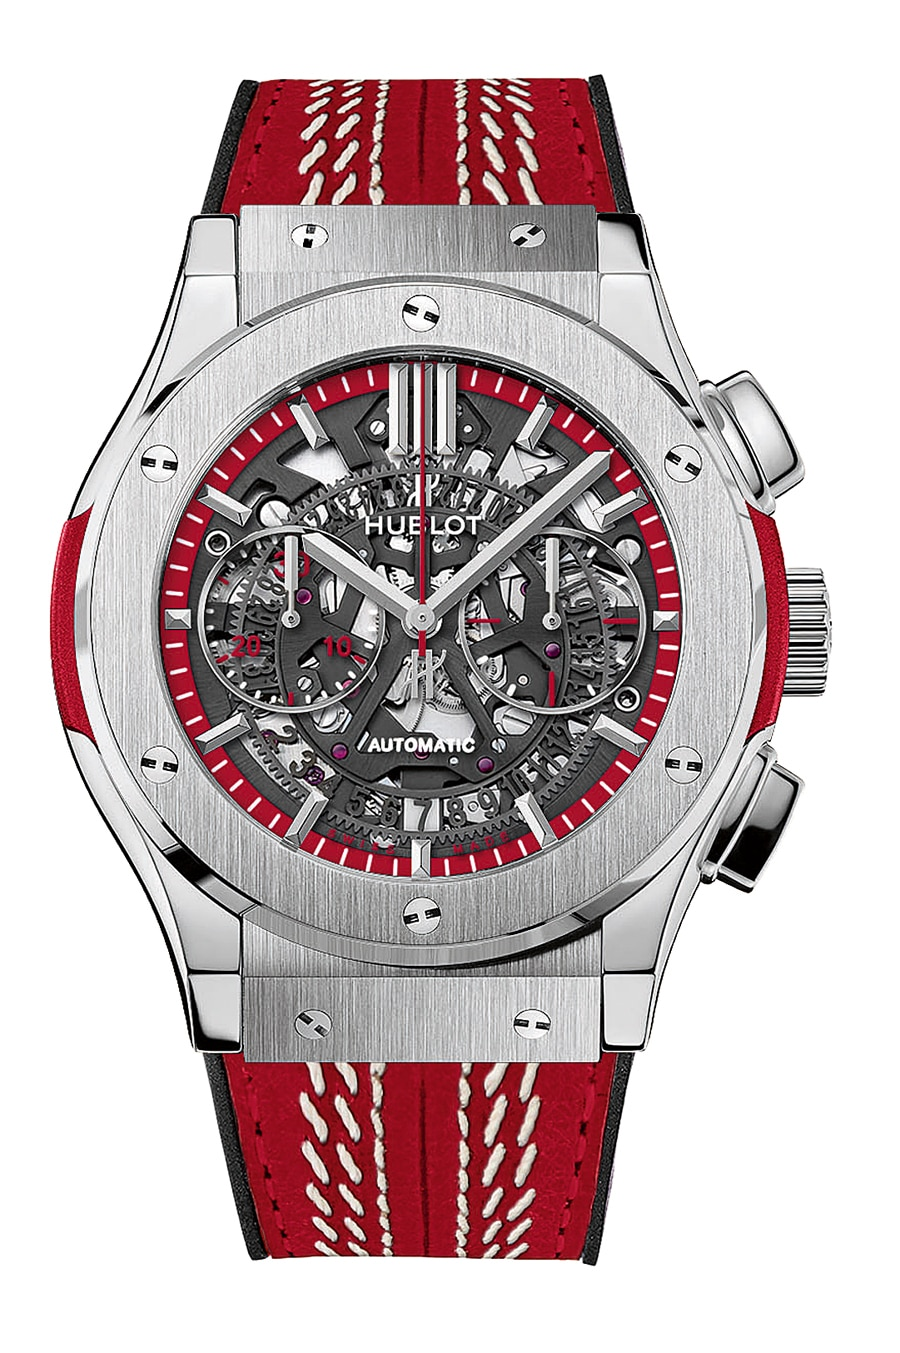 Hublot: Aerofusion Cricket World Cup 2015